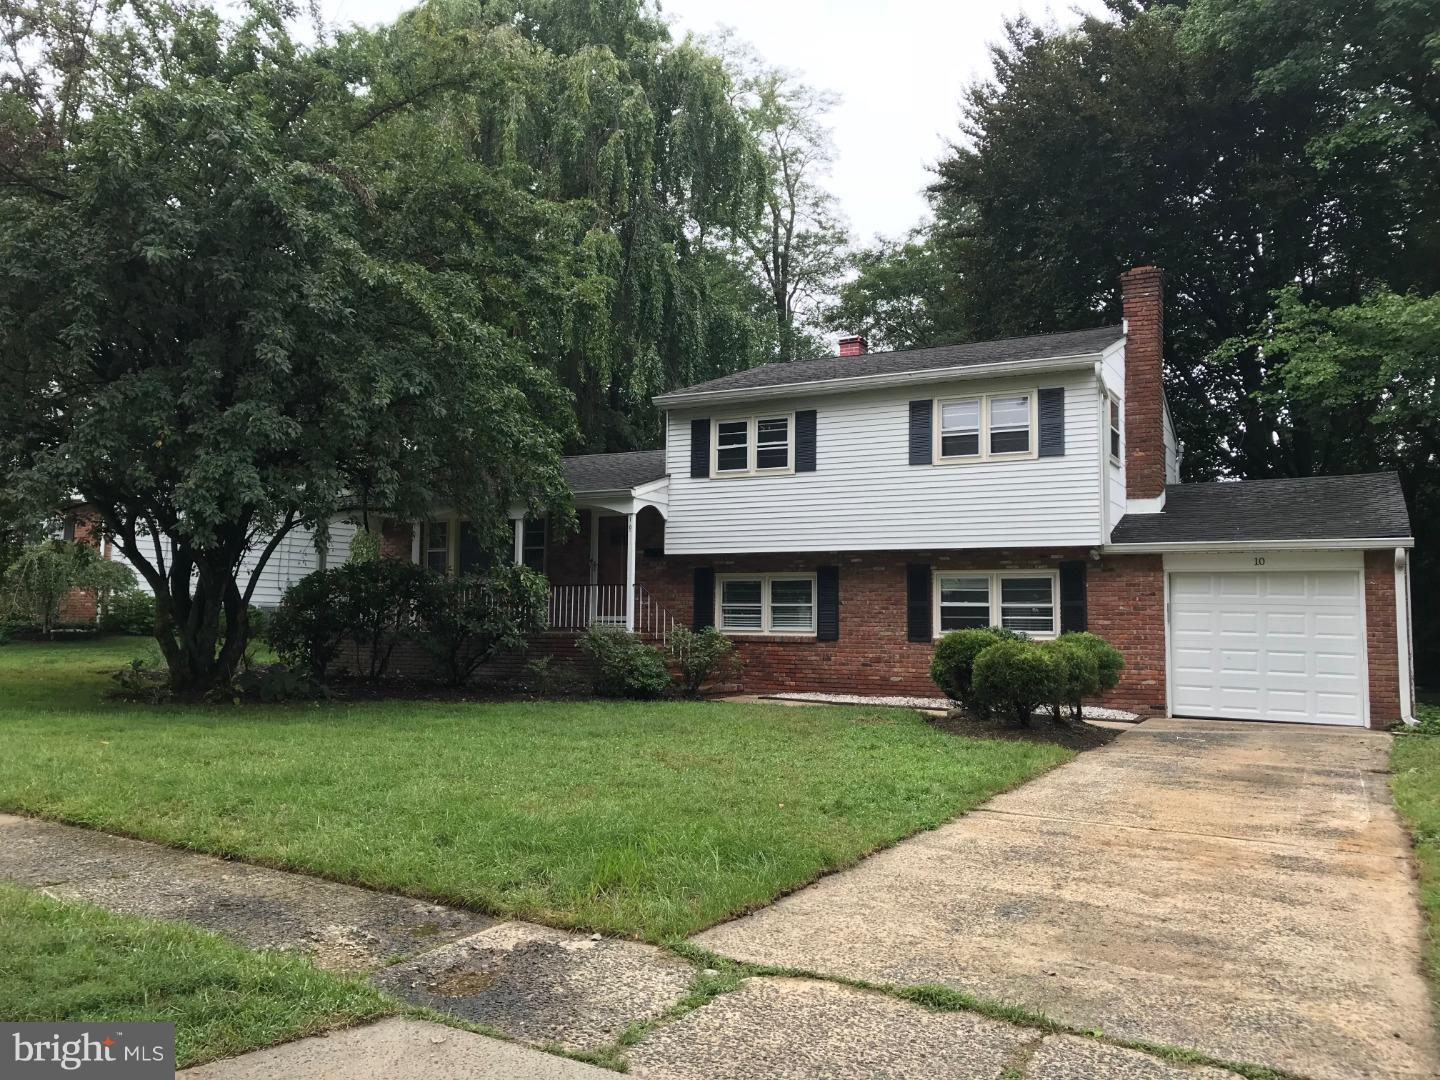 Property for Sale at 10 TEMPLE TER Lawrenceville, New Jersey 08648 United States